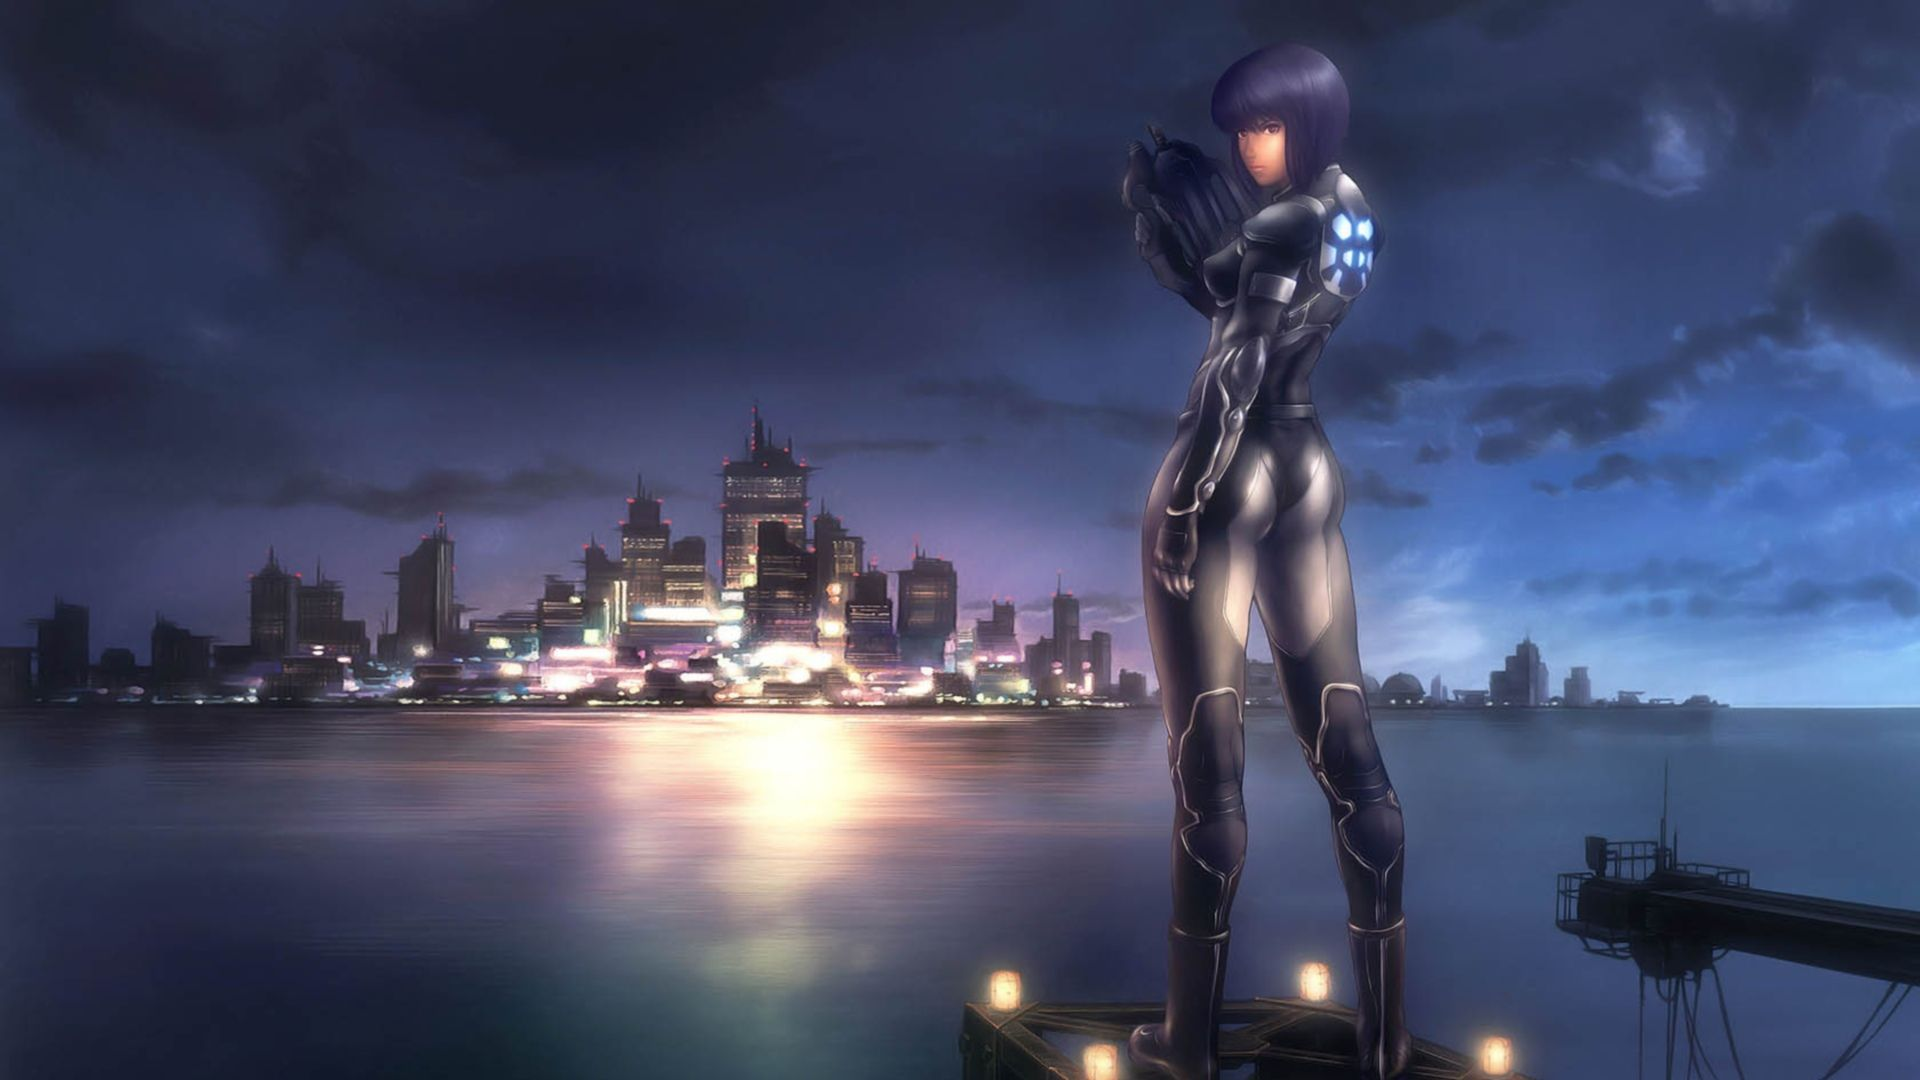 Anime 1920x1080 Motoko Kusanagi Ghost In The Shell Anime Major